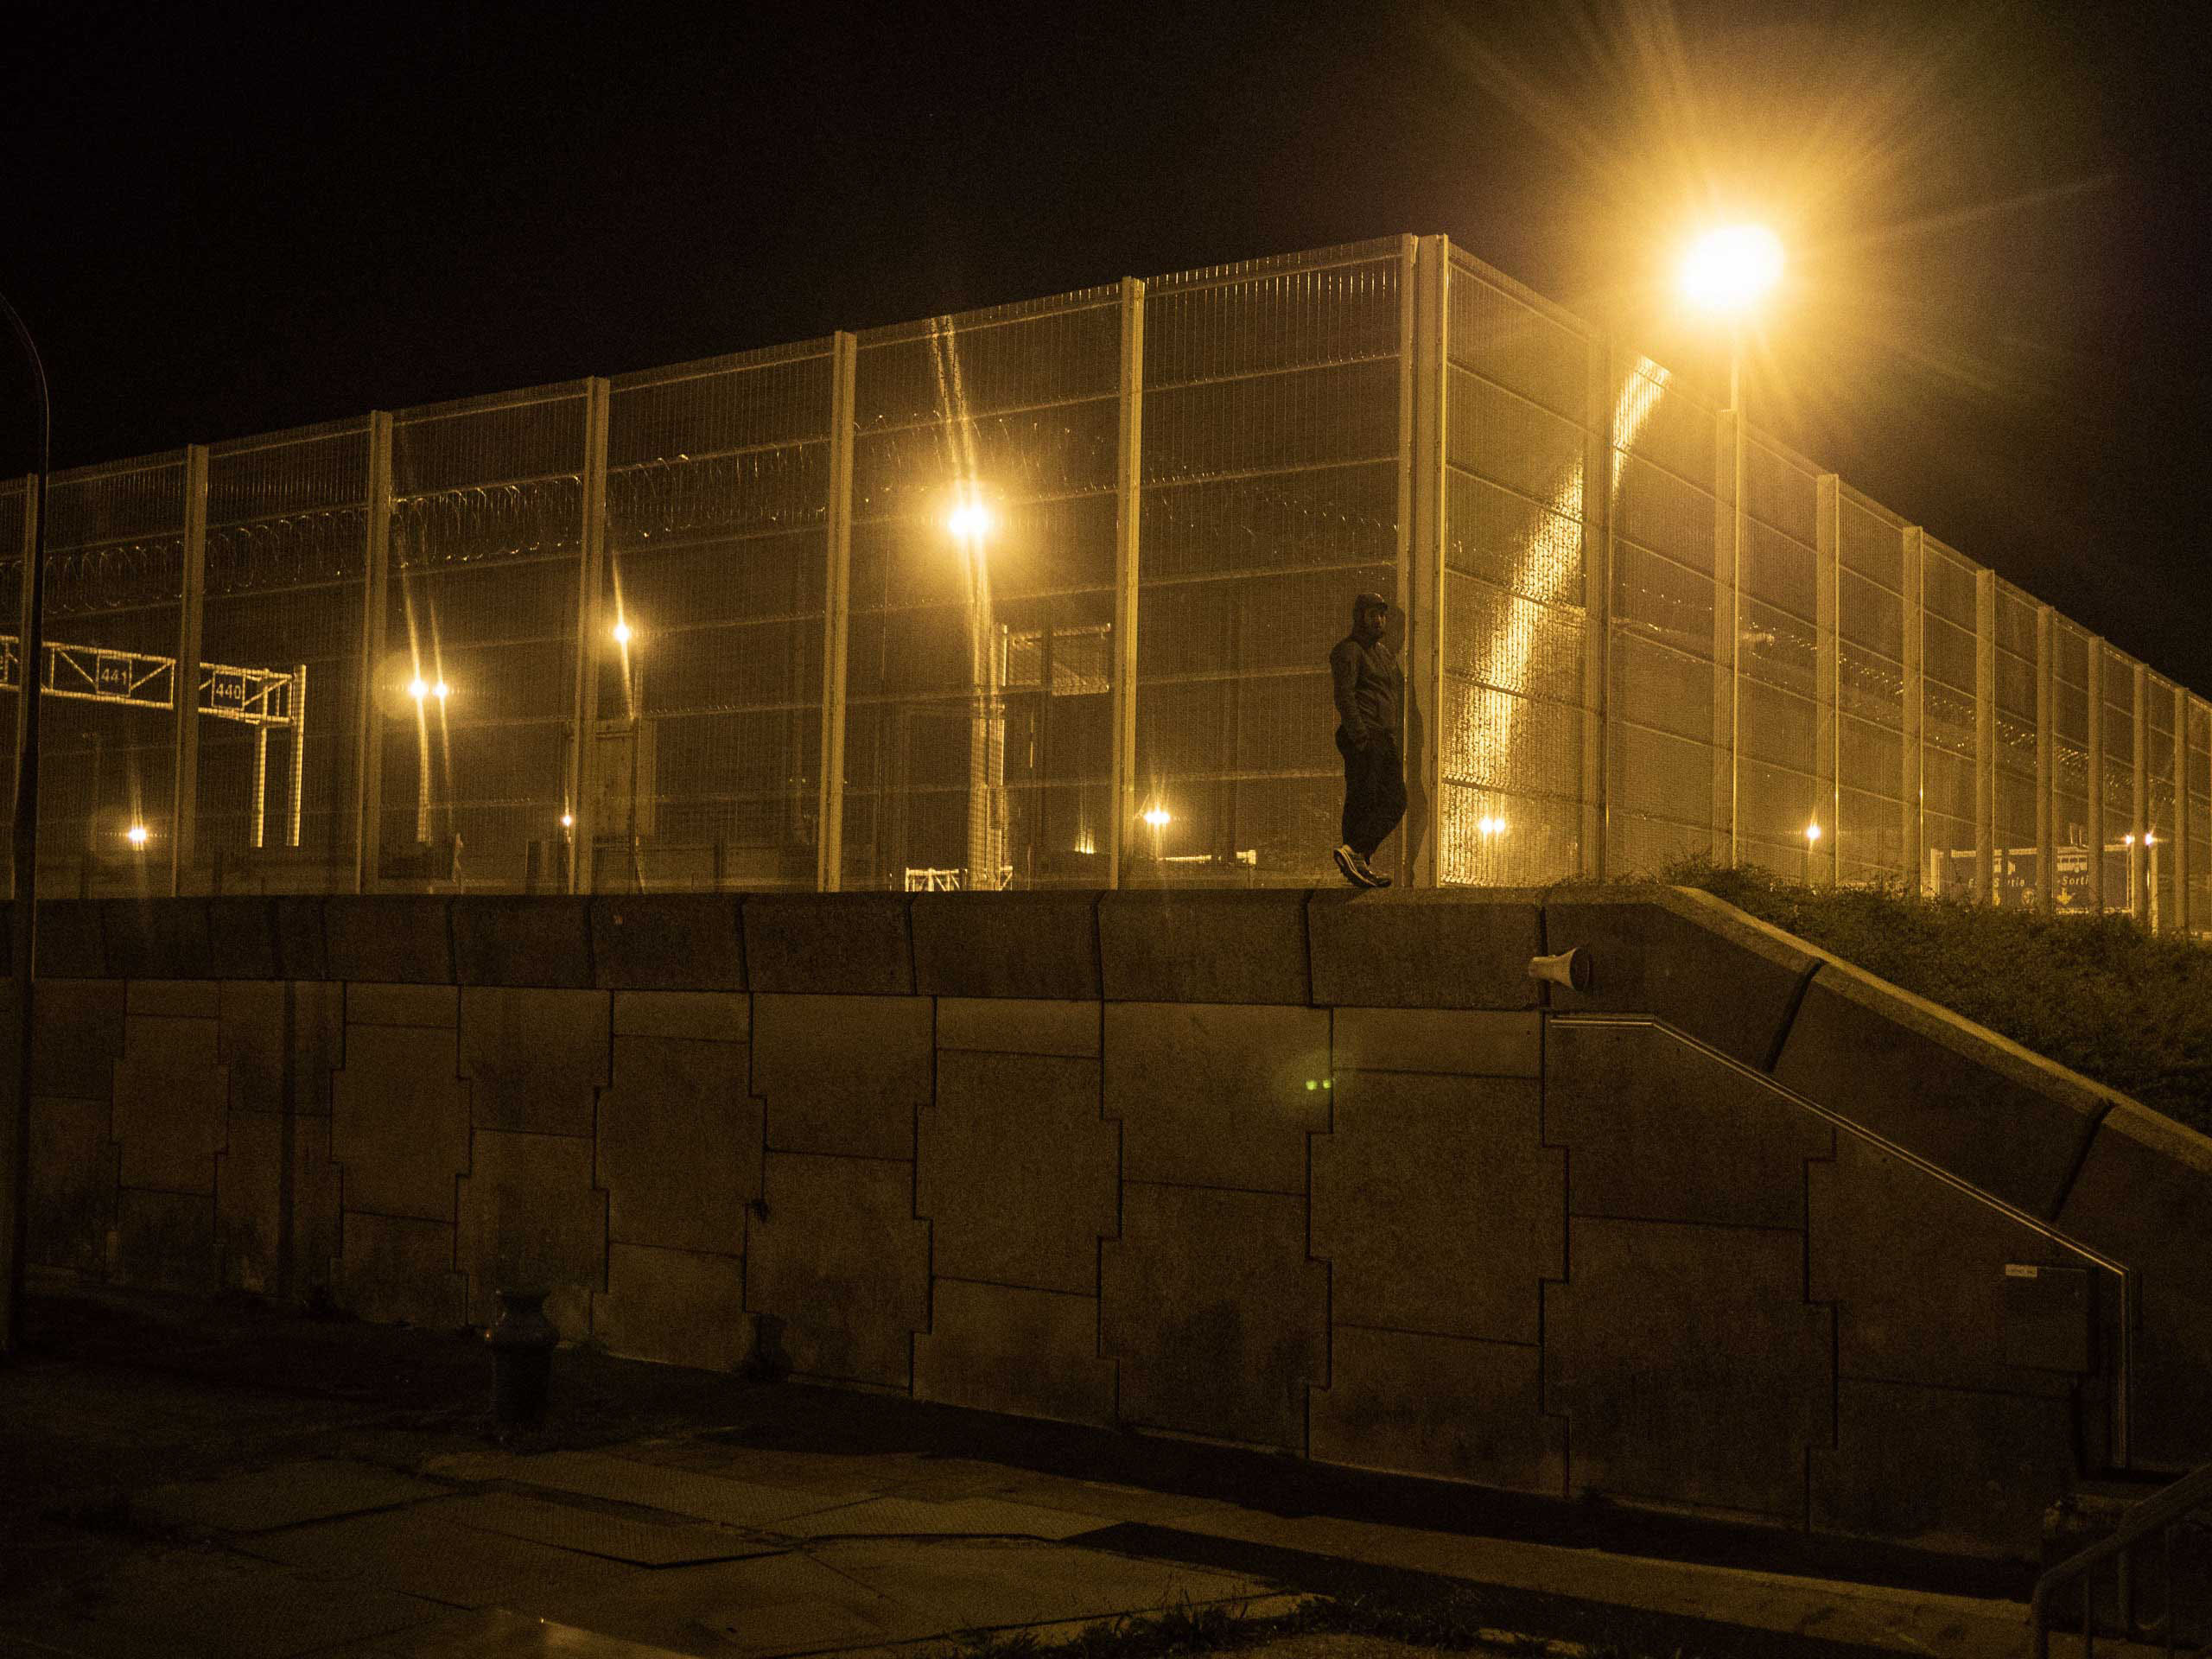 A fence at the shantytown known as the  jungle  in Calais, France where migrants take shelter before attempting to make their way to the United Kingdom, Sept. 17, 2015, Calais, France.